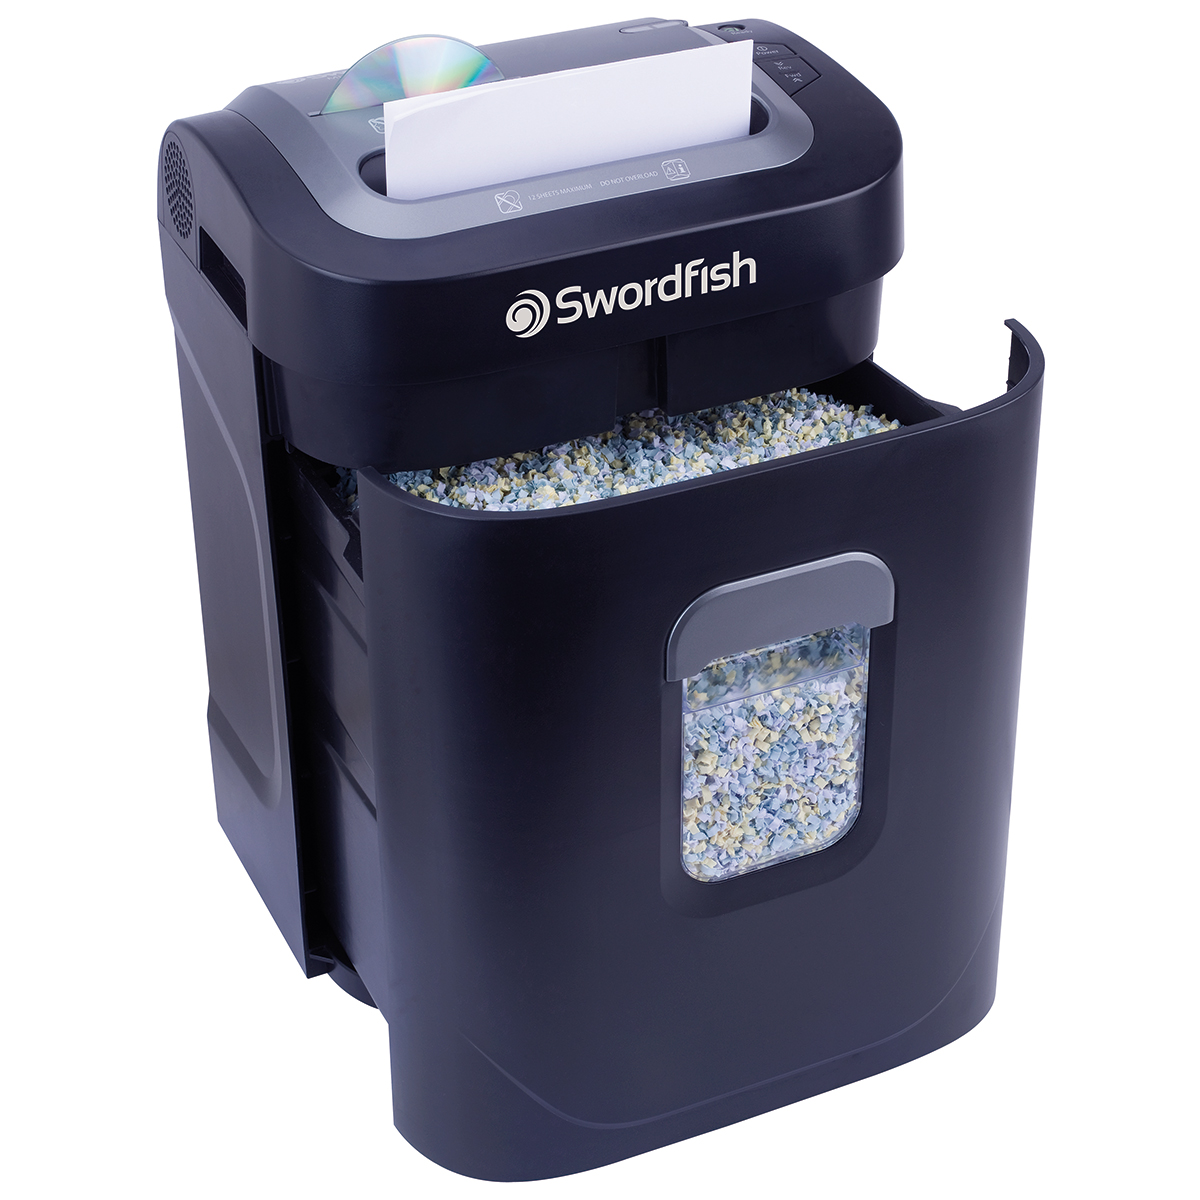 Swordfish 1200XXCD Micro Cut Shredder